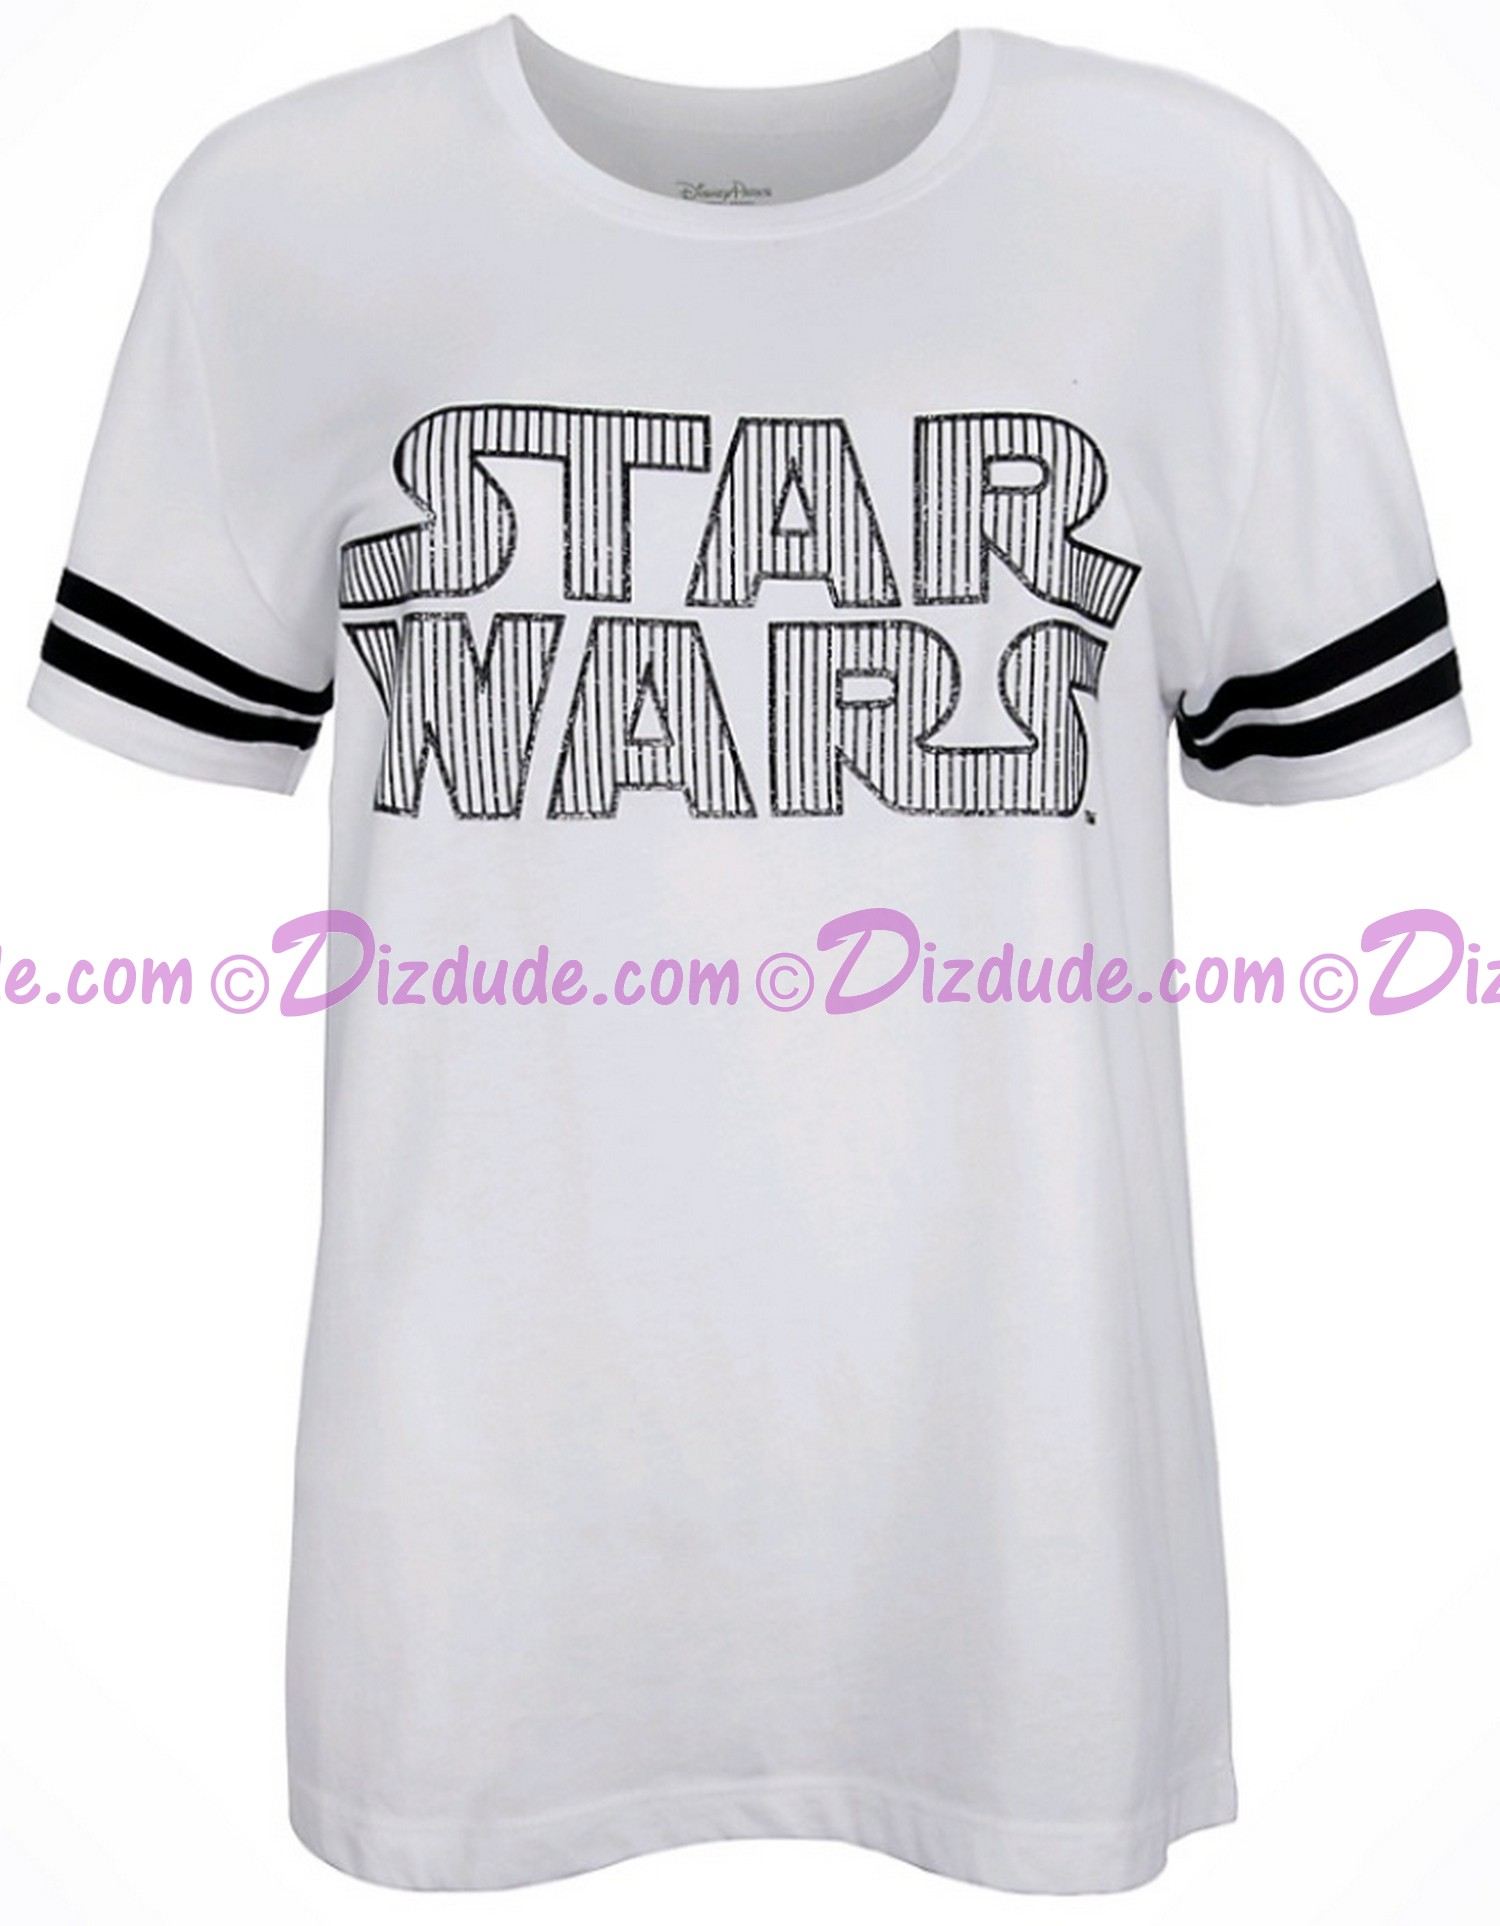 Star Wars Title Logo Football Ladies Tank T-Shirt (Tshirt, T shirt or Tee) ~ Disney SOLO A Star Wars Story © Dizdude.com